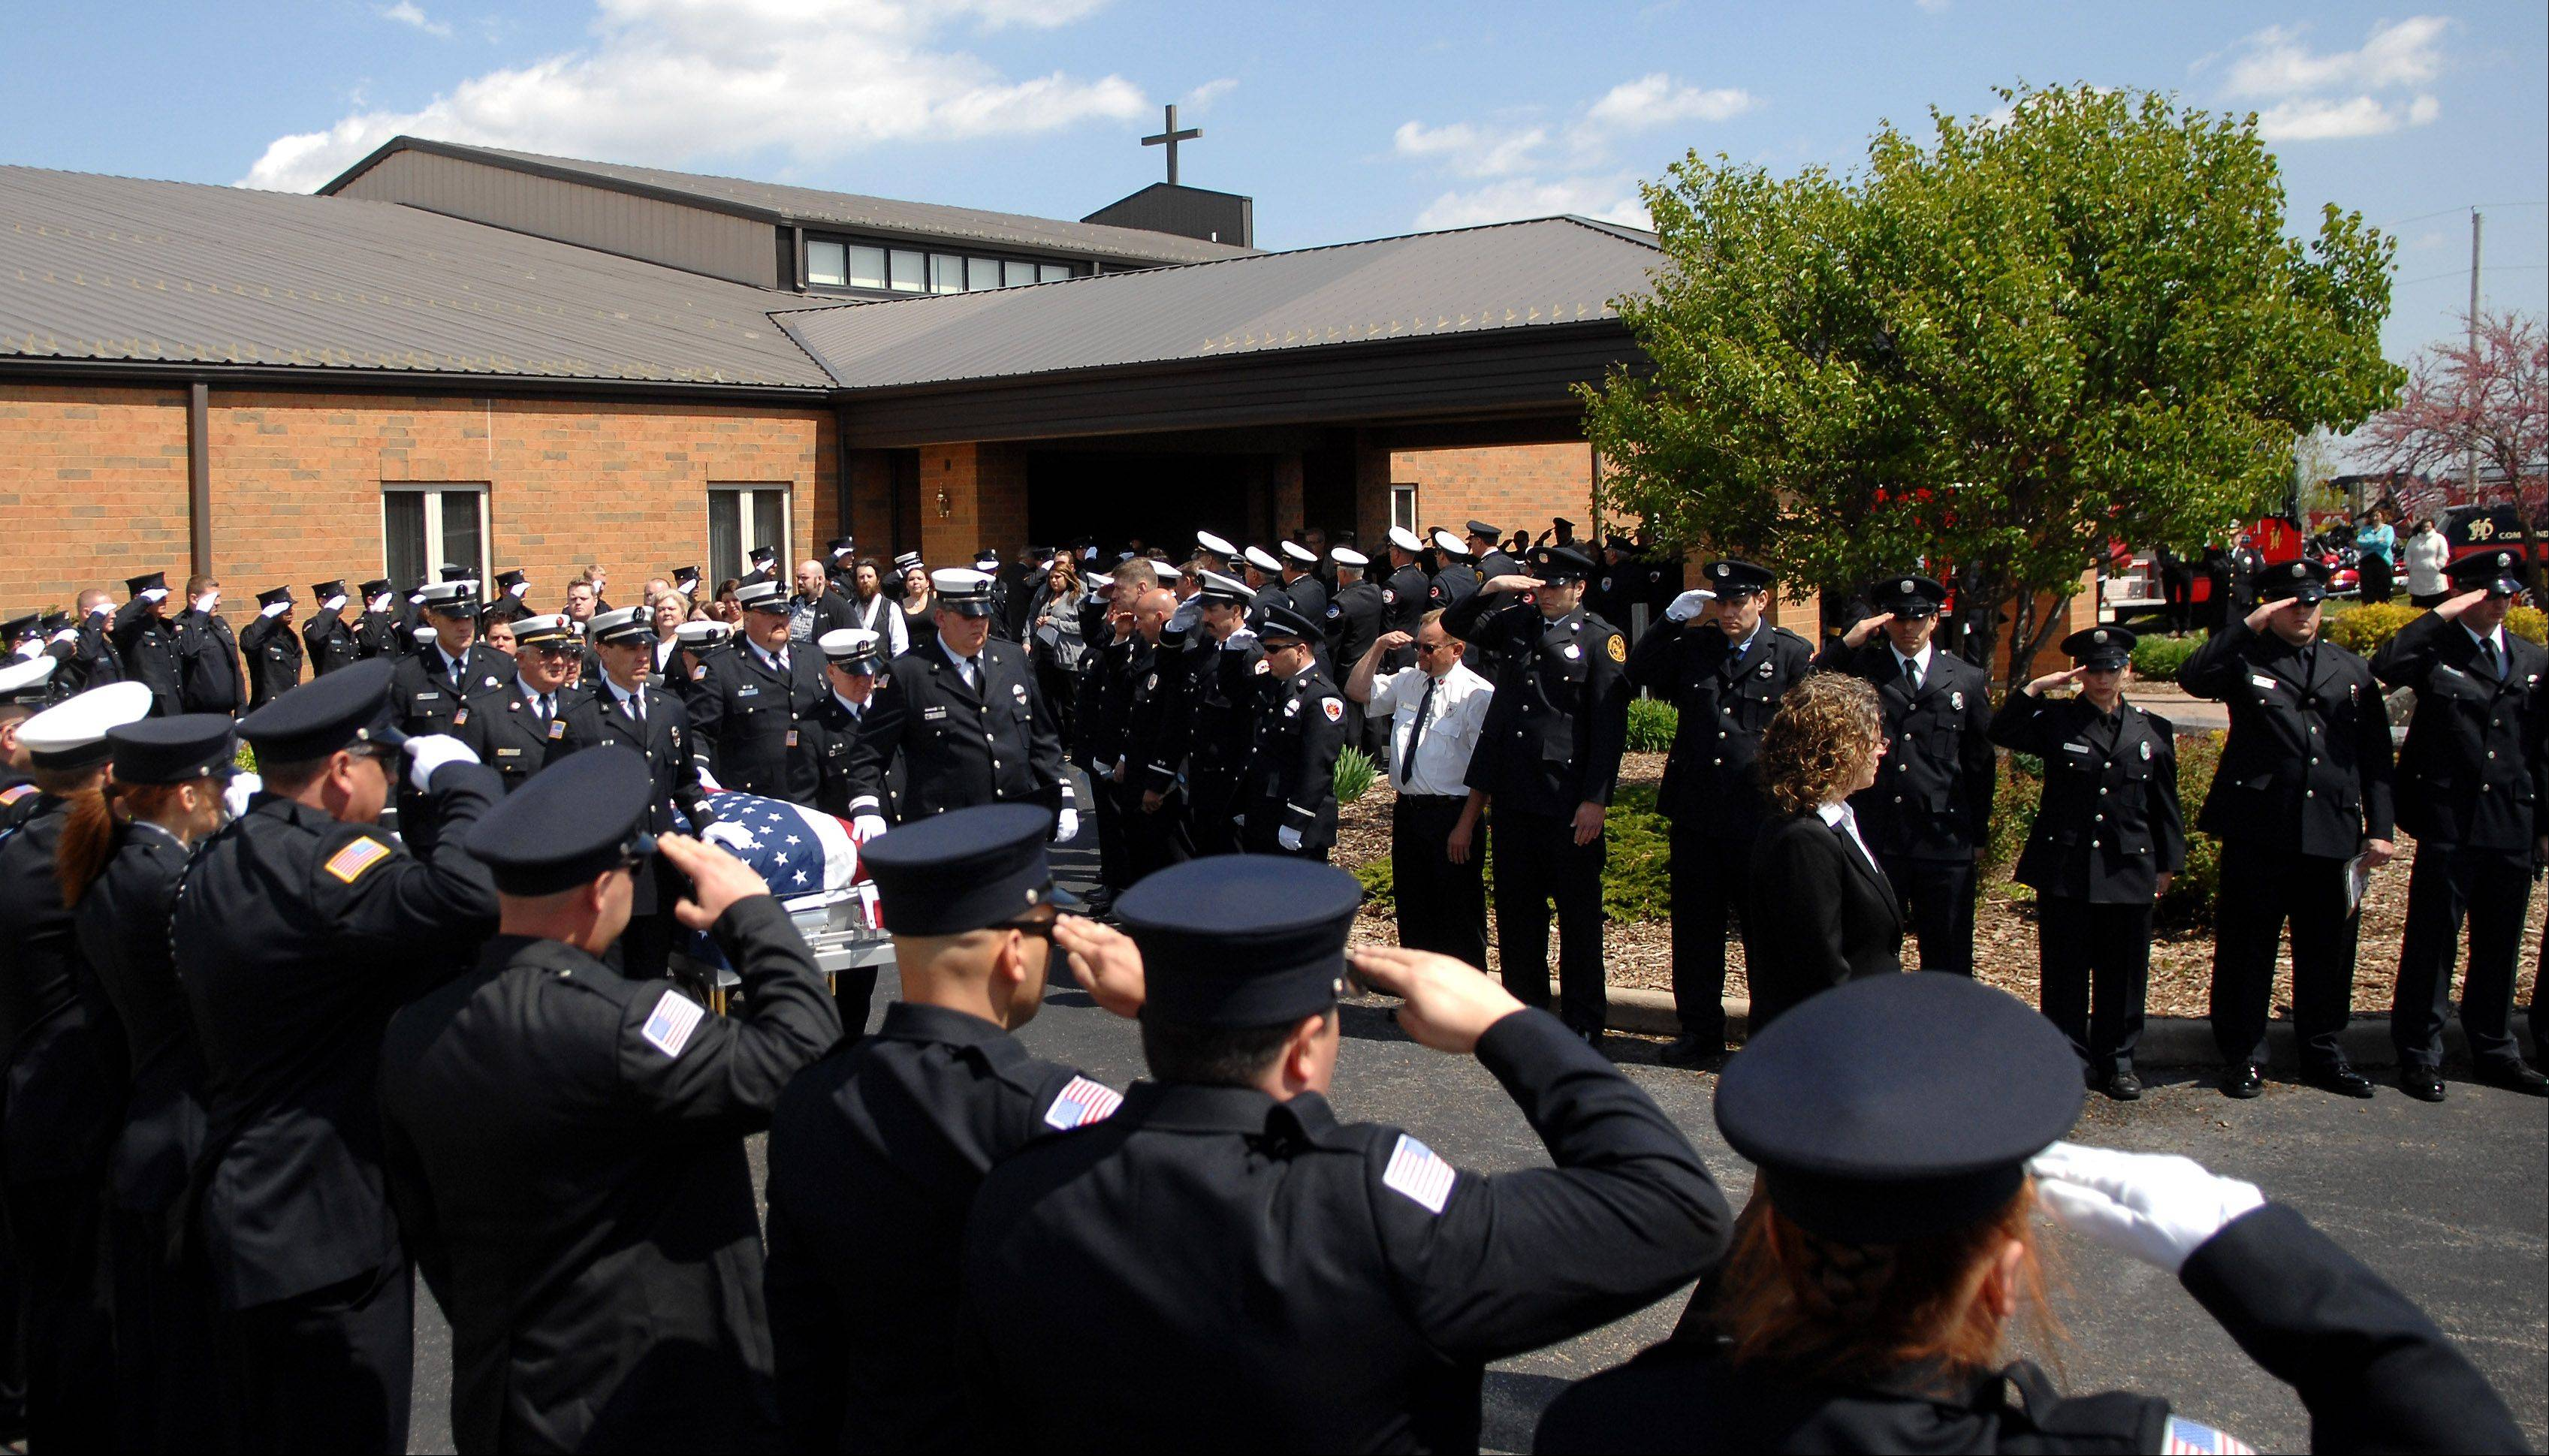 Firefighters from around the region salute as the casket carrying Huntley Fire Capt. John Winkelman is brought out of St. John's Lutheran Church after his funeral in Union Wednesday. Winkelman was killed on duty in a motorcycle accident last week in Crystal Lake, while on his way home from a committee meeting.